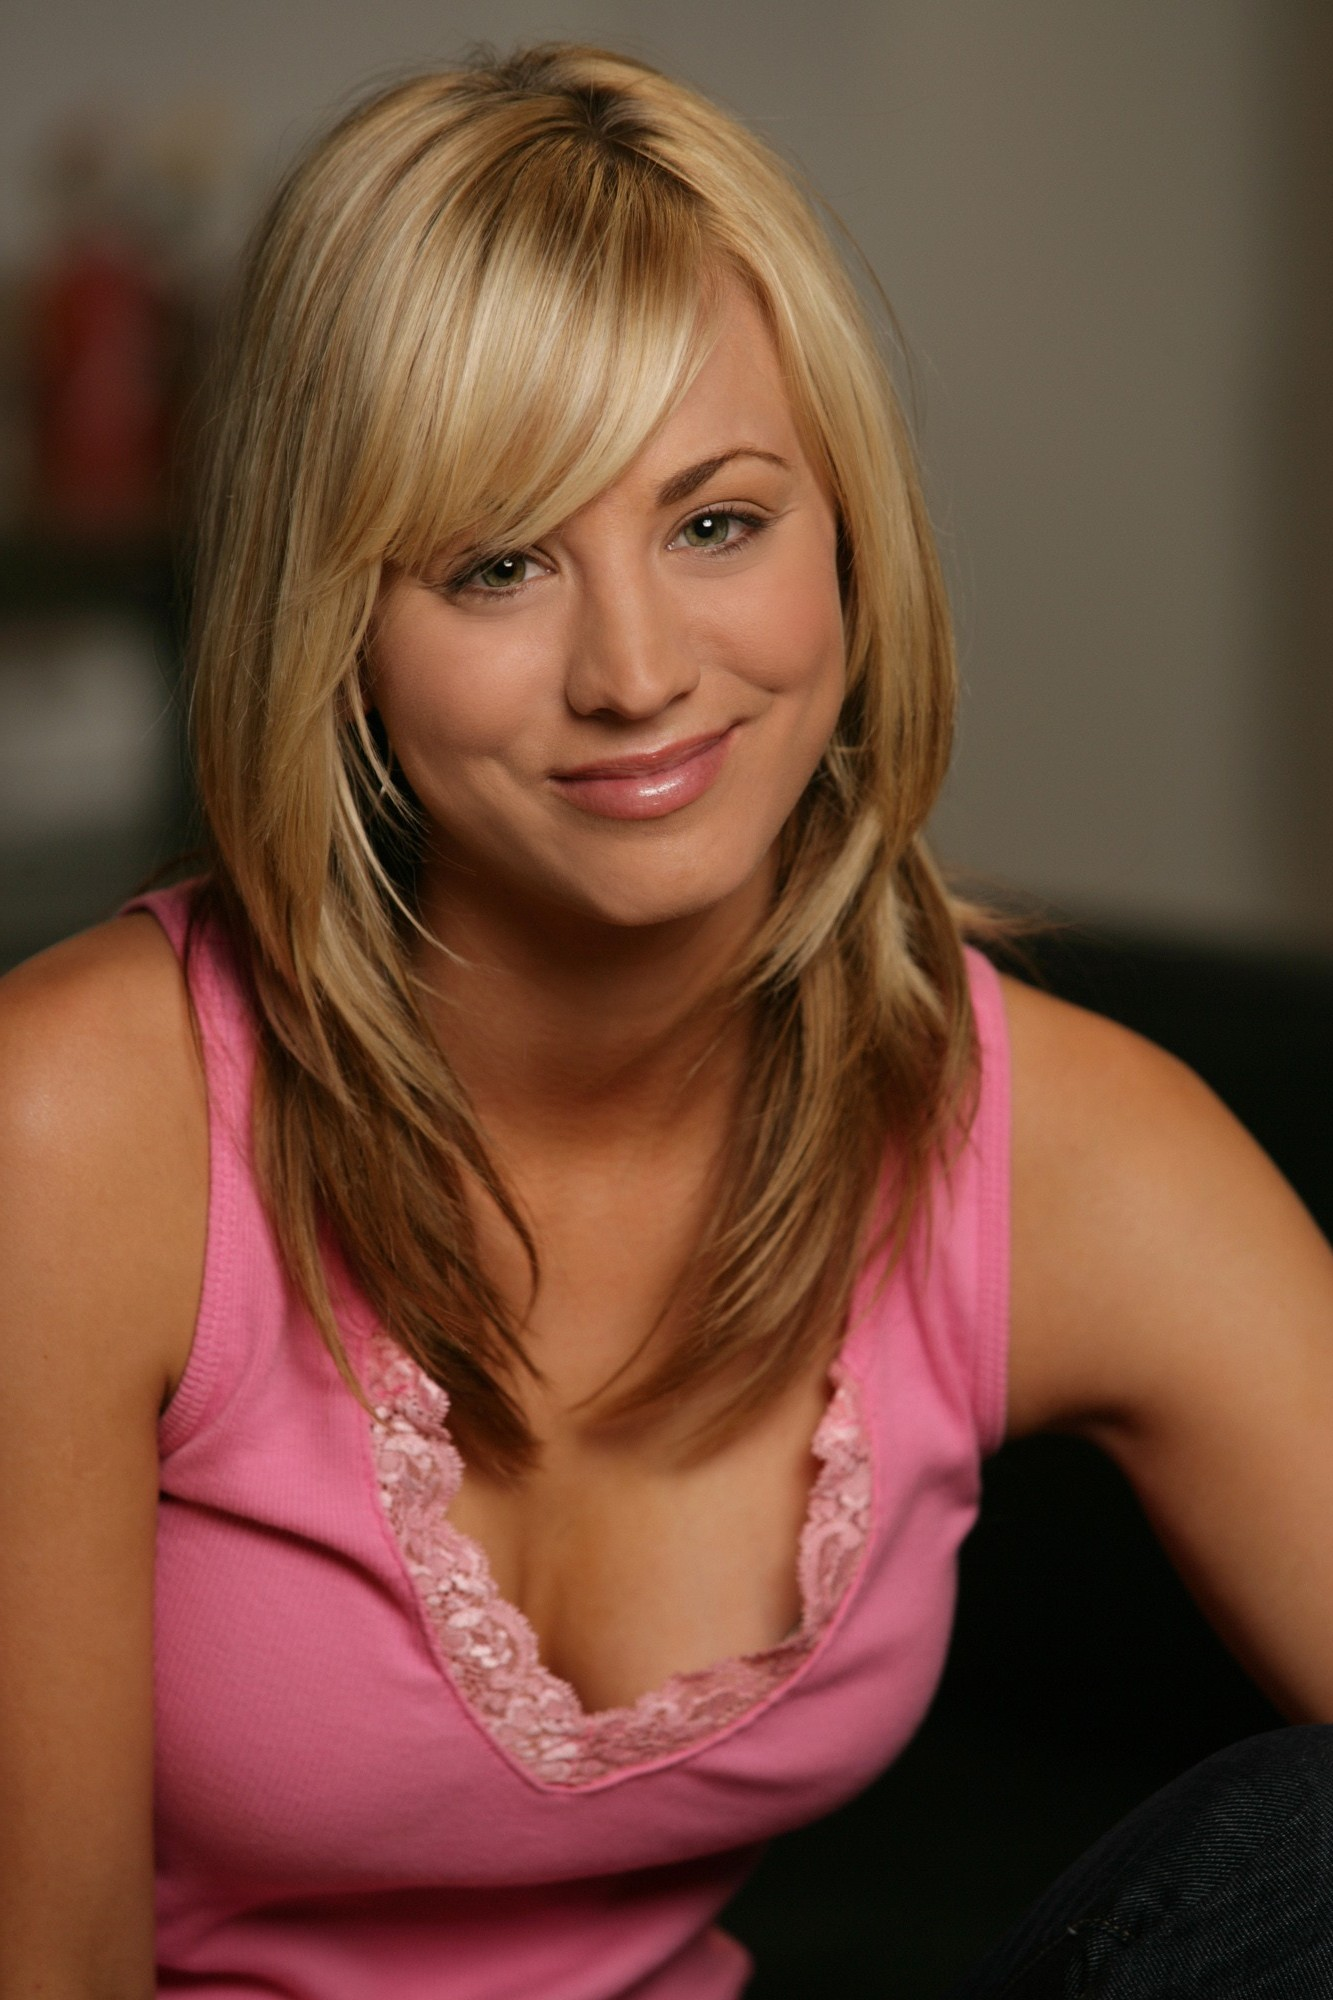 Kaley Cuoco Wallpapers hd